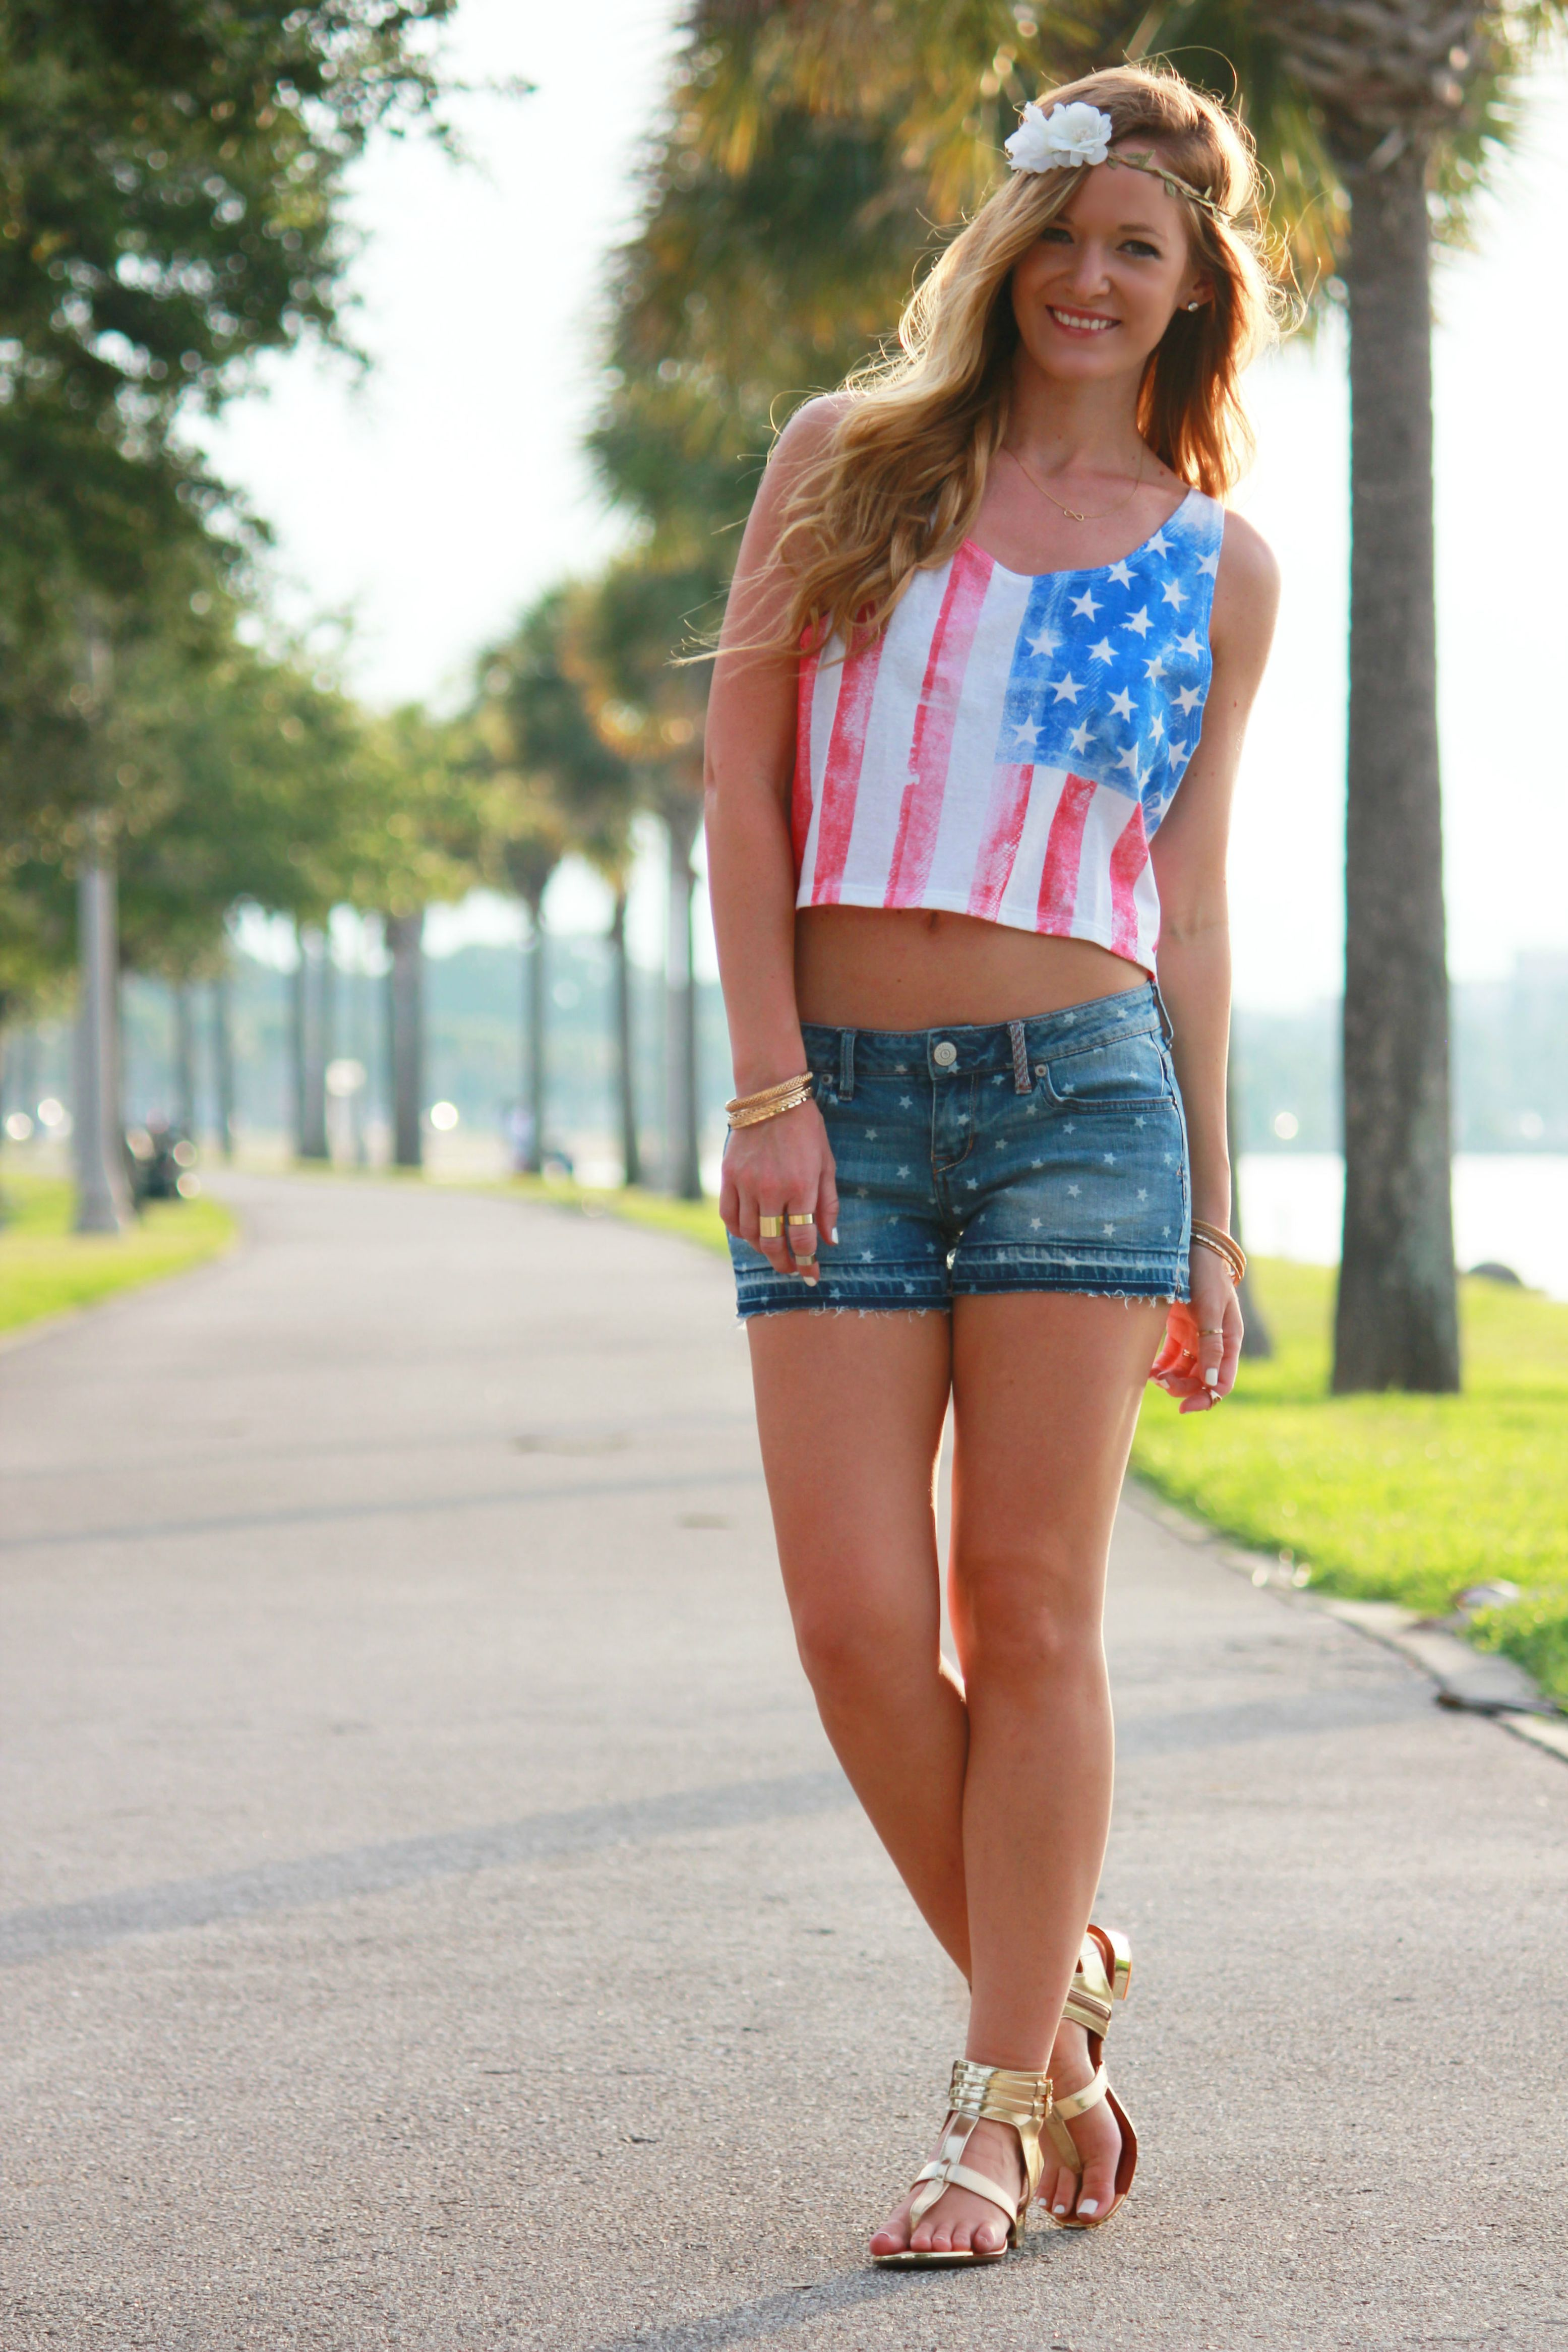 4th of july outfit, aeropostale top, aeropostalr shorts, gianni bini sandals, flower crown, summer outfit